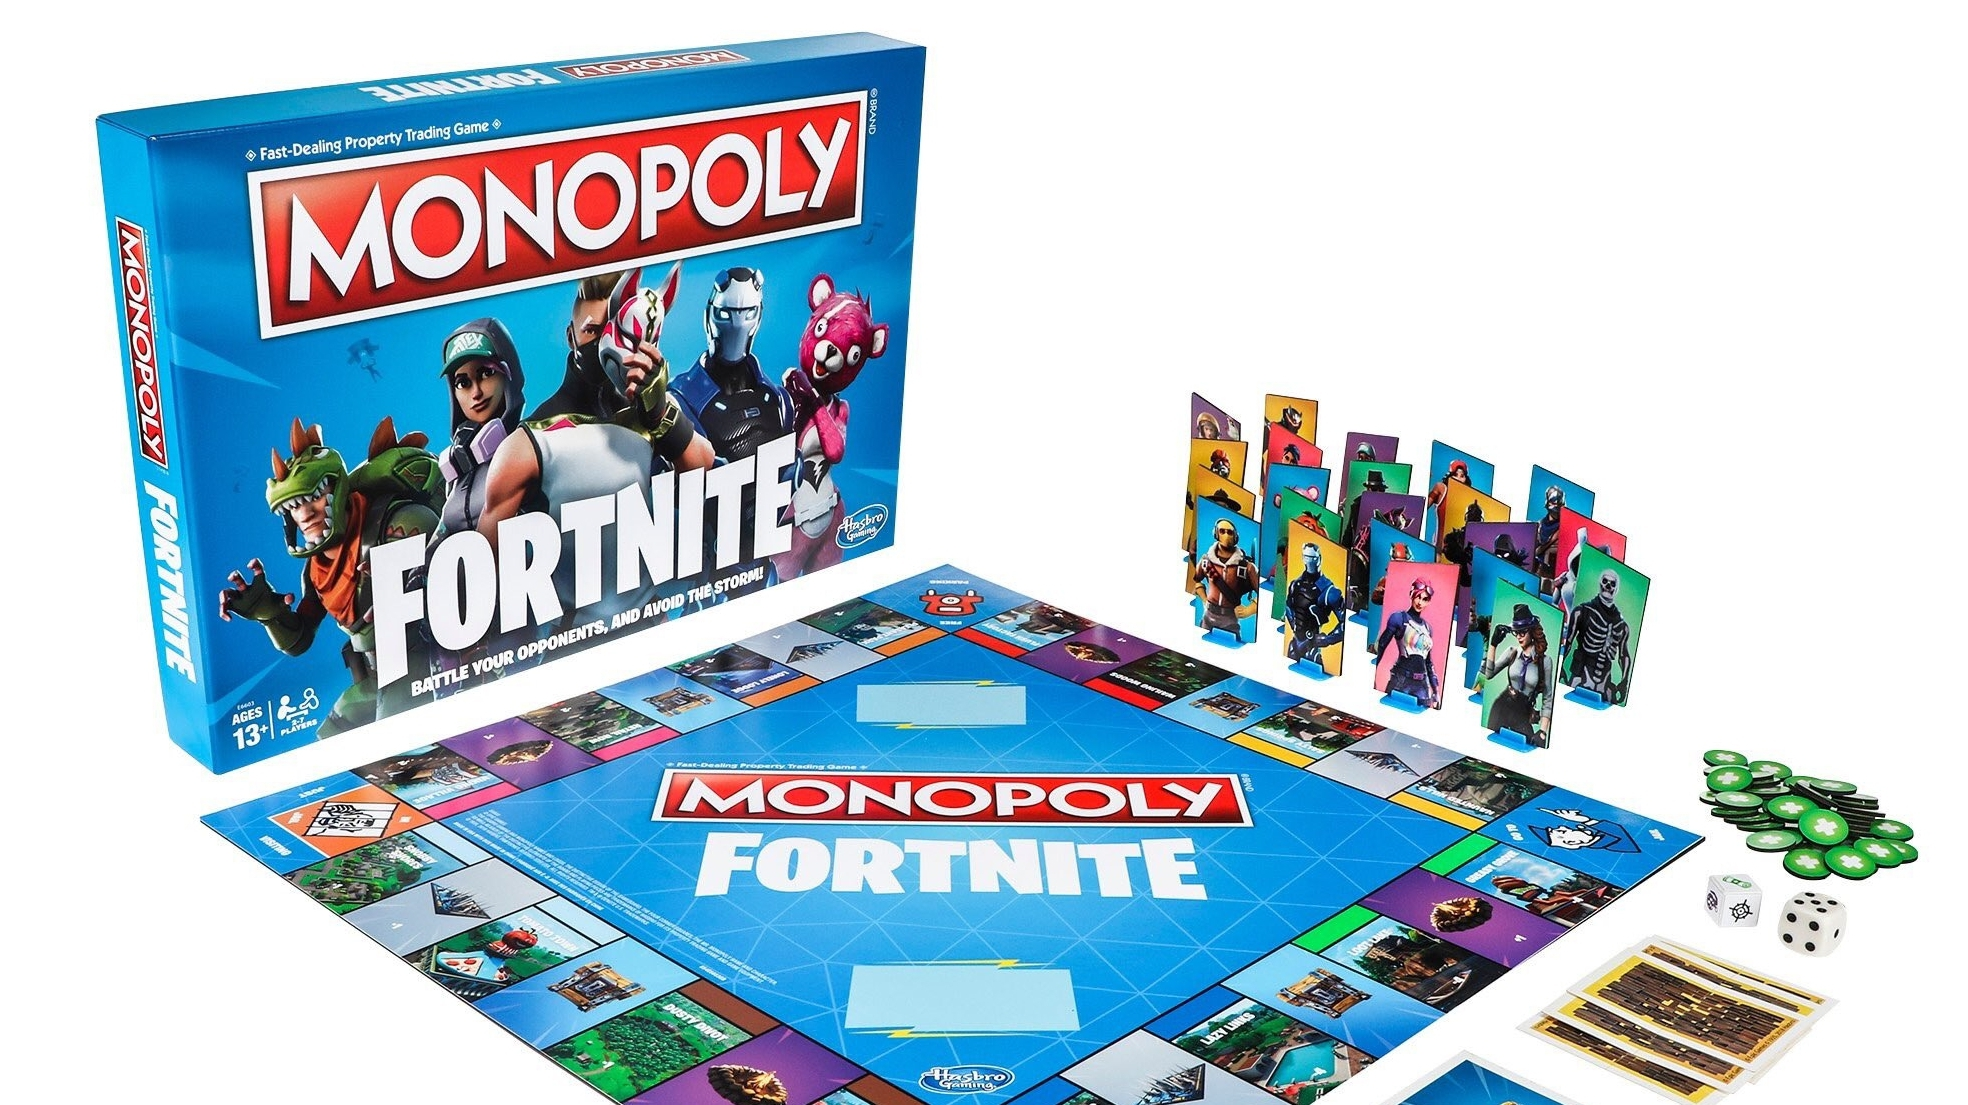 monopoly pc game 2018 download